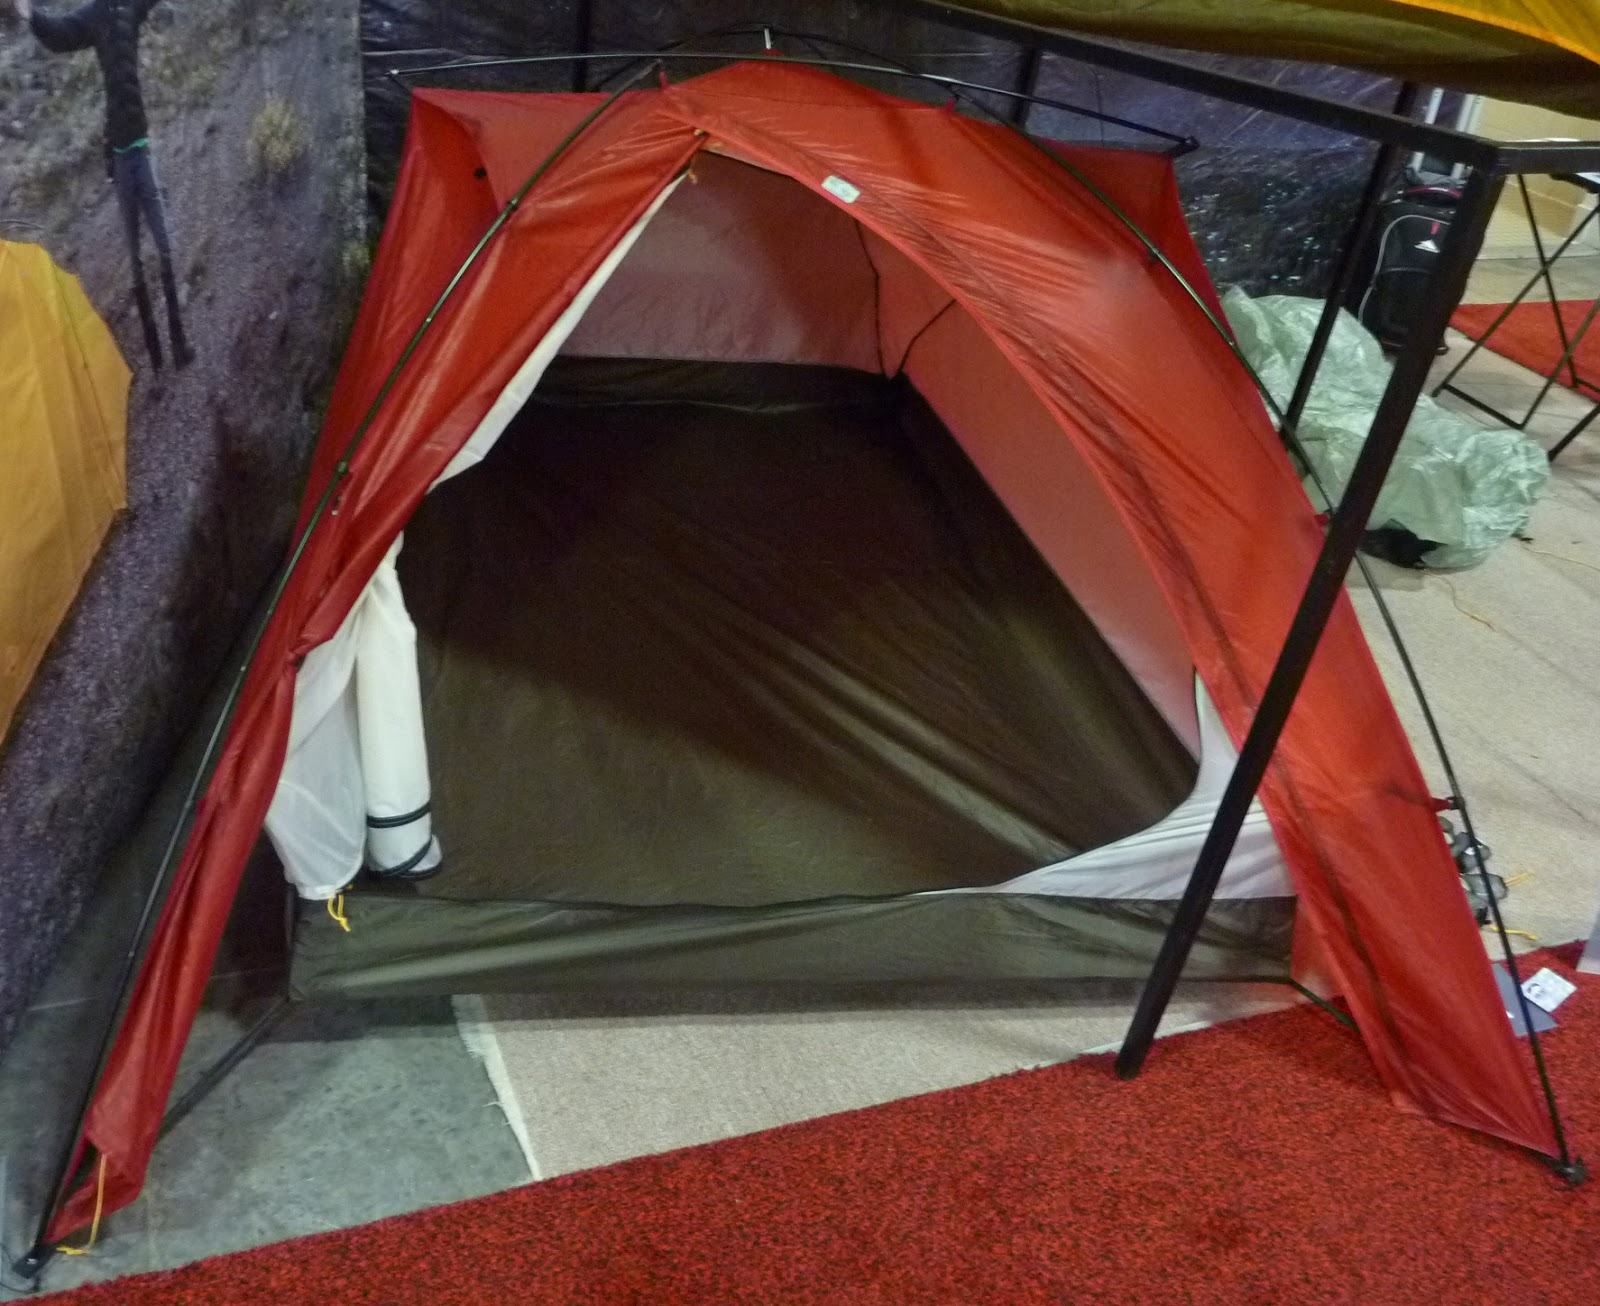 Big Sky International Glacier Extreme Tent. This is a four-season three pole two person tent that weighs just 3 pounds 9 ounces. It has an end entry ... & Ultralight Insights -- Whatu0027s New and Exciting for Ultralight ...